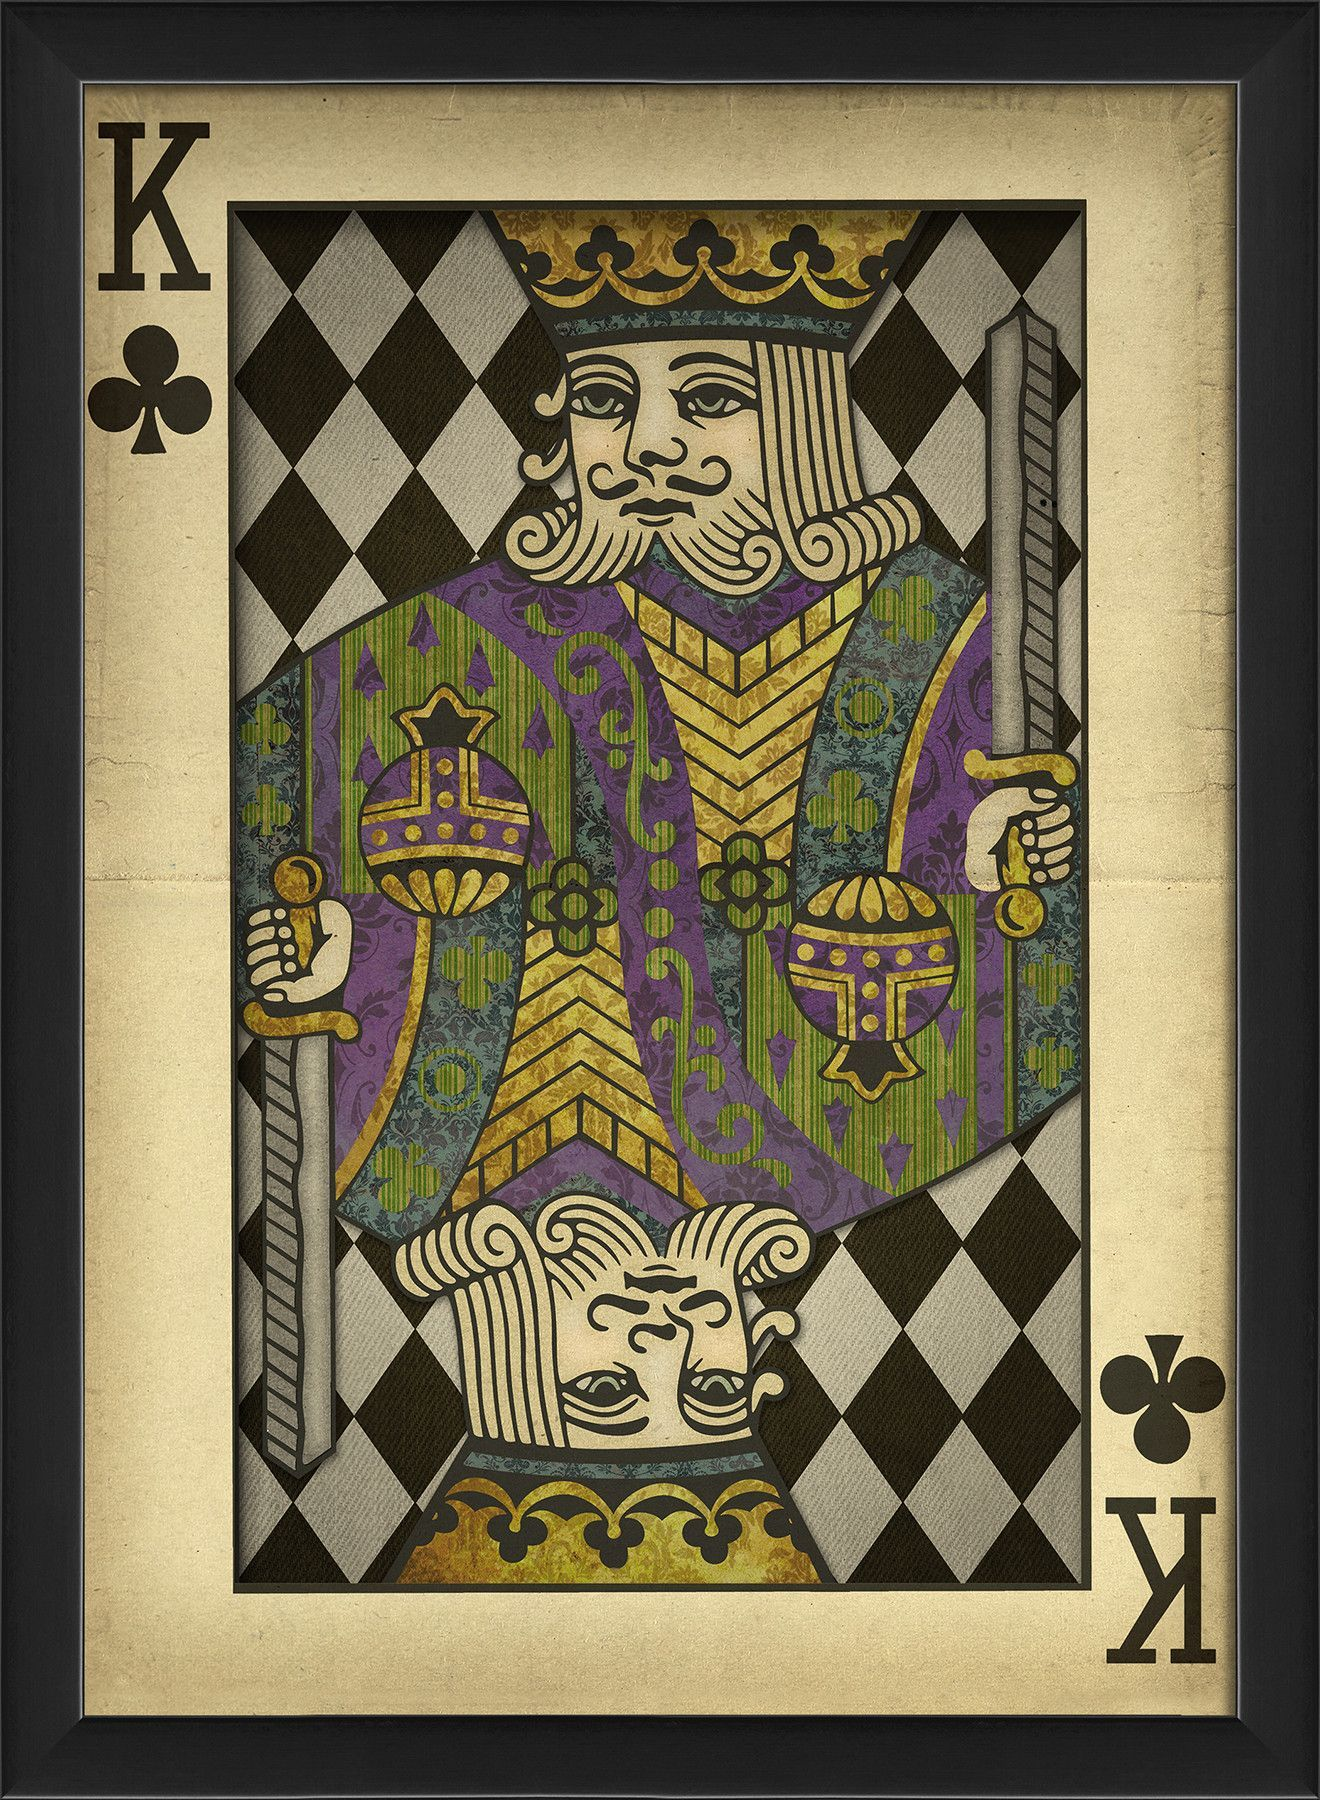 King Of Clubs Harlequin Playing Card Framed Graphic Art